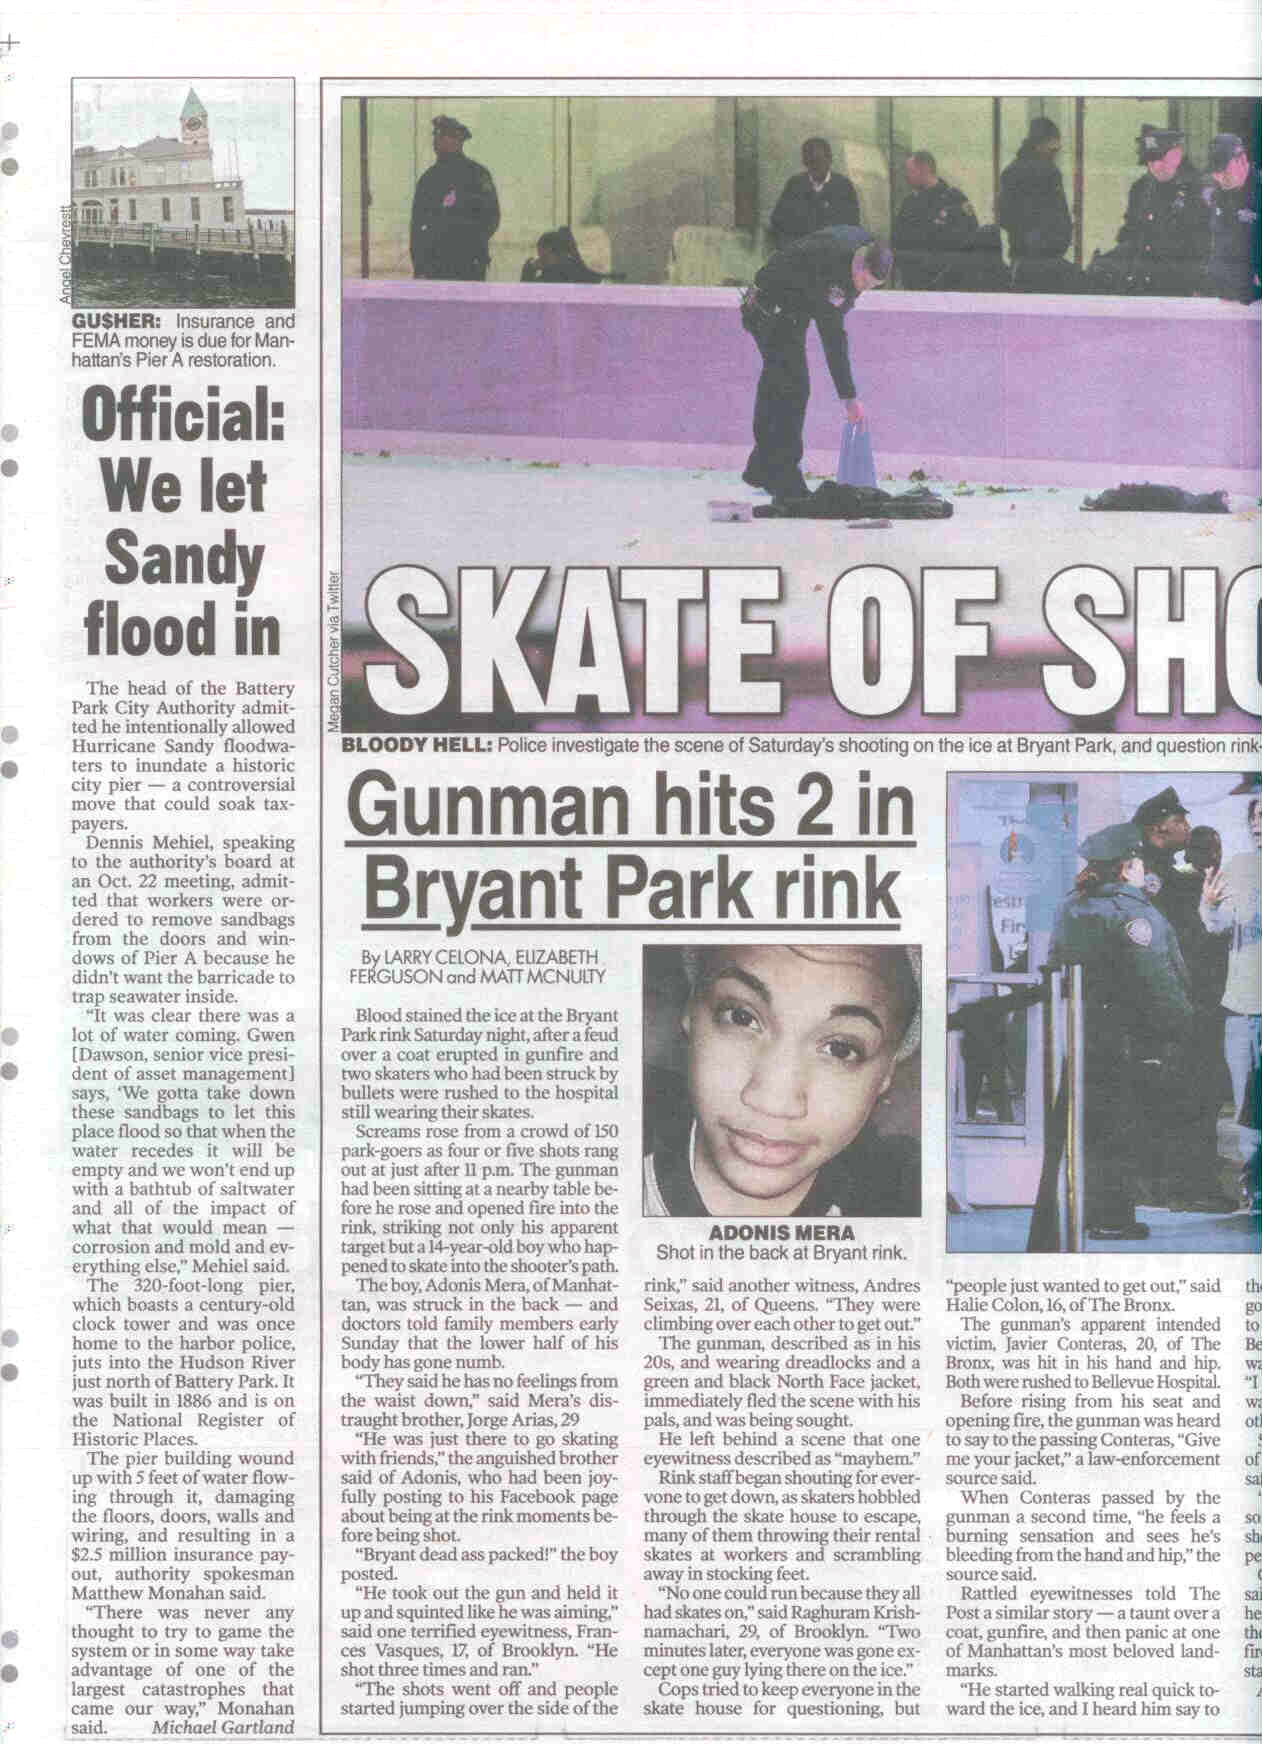 NY Post page on Pier A story